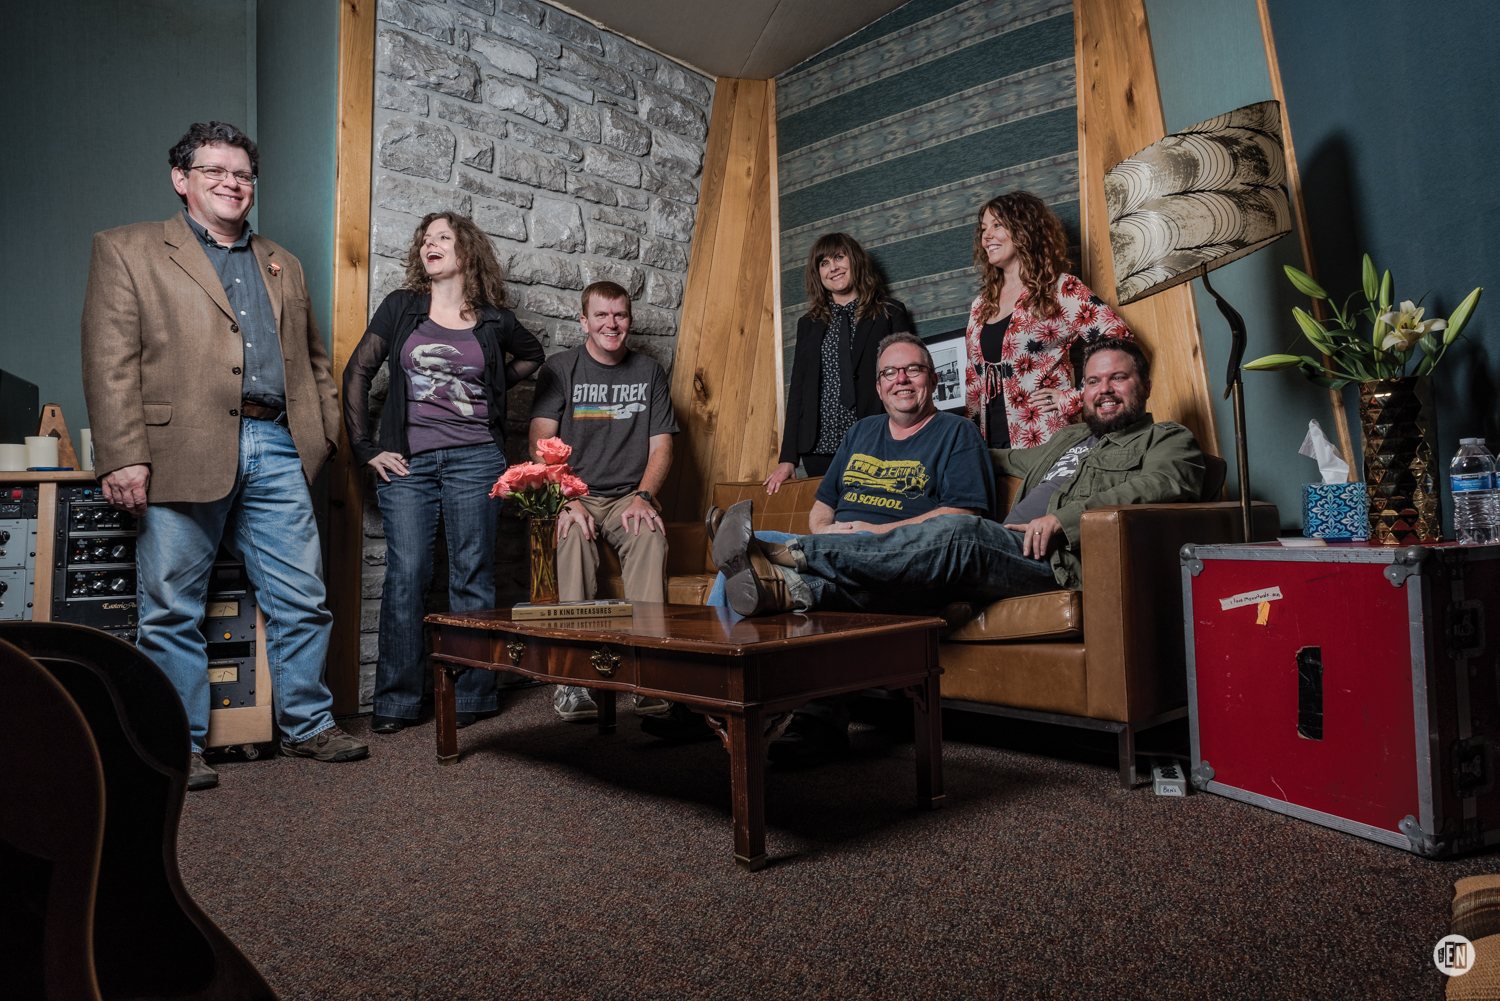 WXNA board members relax at Grand Victor Sound. L-R: Randy Fox, Ashley Crownover, Jonathan Grigsby, Laura Powers, Pete Wilson, Heather Lose, Roger Blanton. Photo by Eric England.